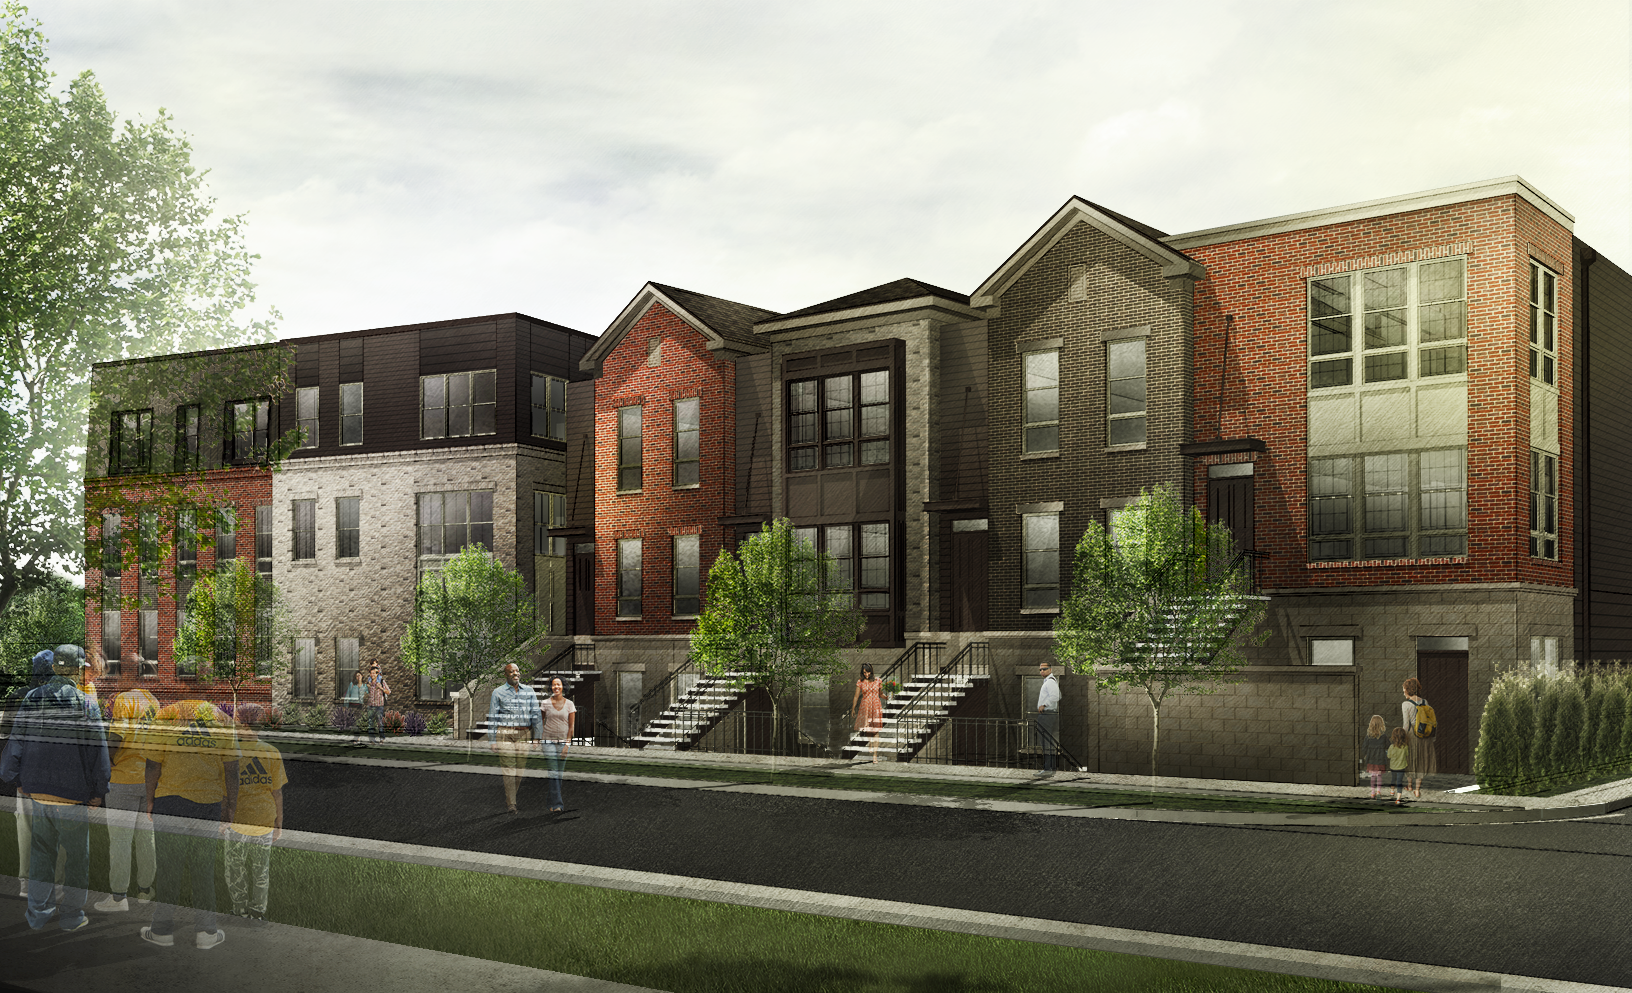 Townhome building at The Adelphi Quarter